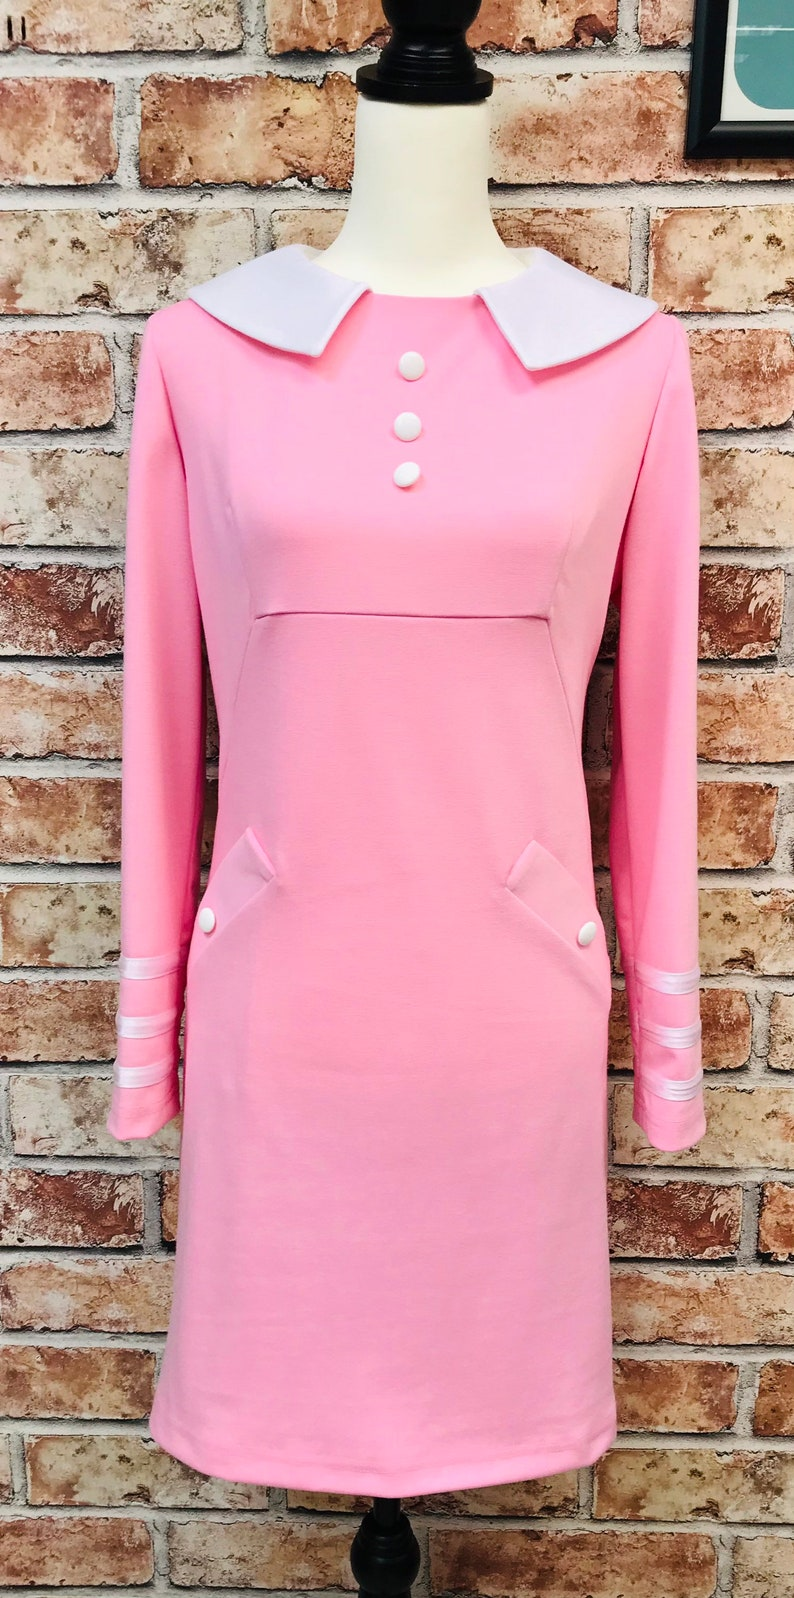 60s Dresses | 1960s Dresses Mod, Mini, Hippie Pink and white 1960s Mod inspired long sleeved Dress $107.34 AT vintagedancer.com